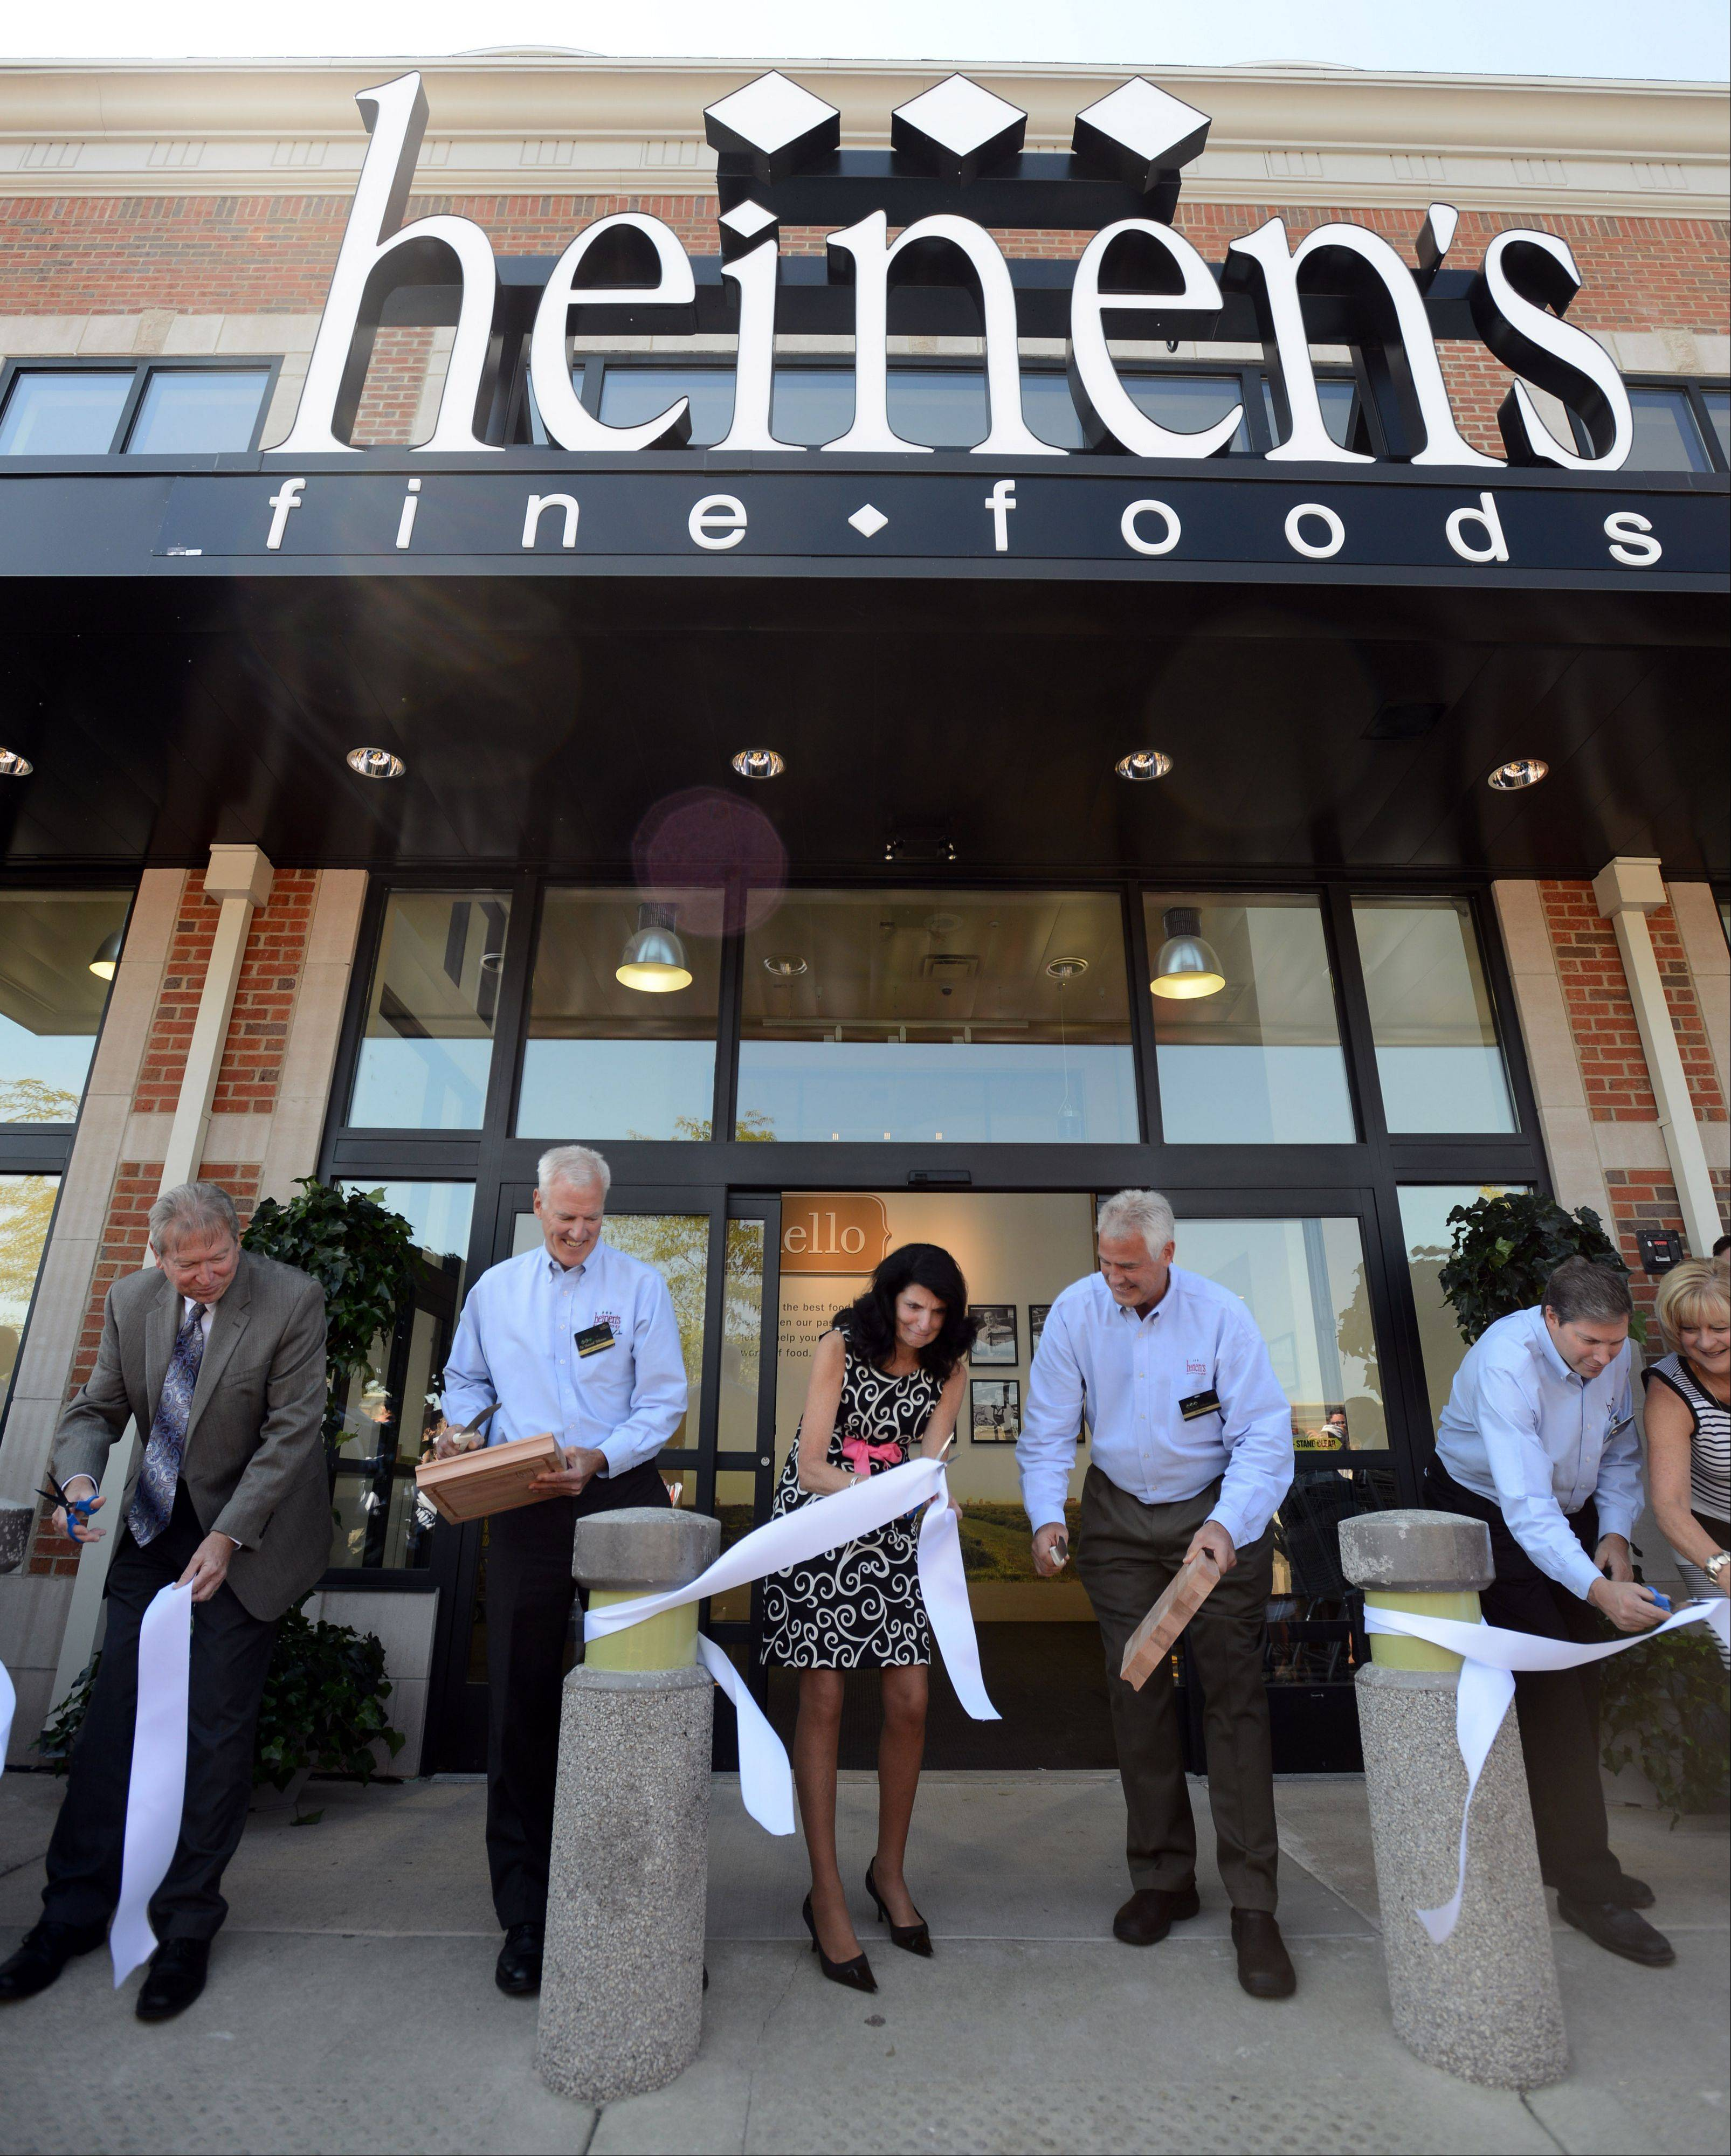 Co-owners and brothers Jeff and Tom Heinen along with Barrington Village President Karen Darch cut the ribbon at the grand opening of Heinen's Fine Foods in Barrington Wednesday morning. The store is the Cleveland-based chain's first in the Chicago area.